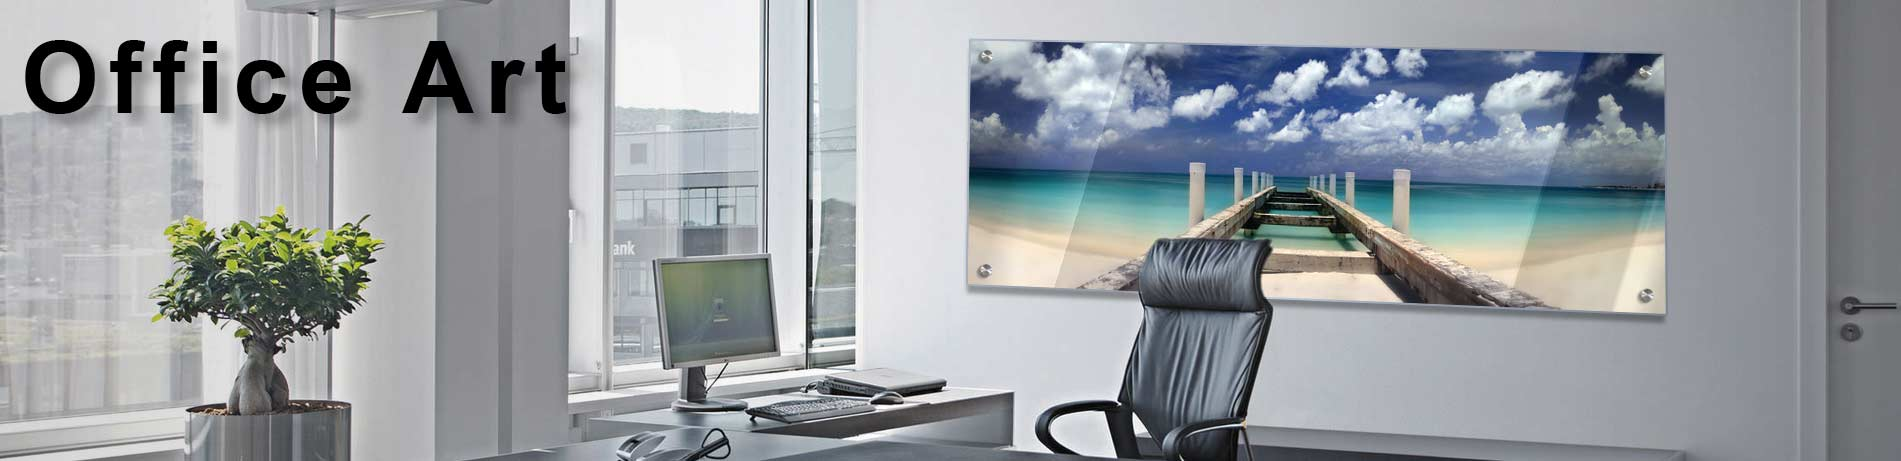 sleek, modern office art on acrylic